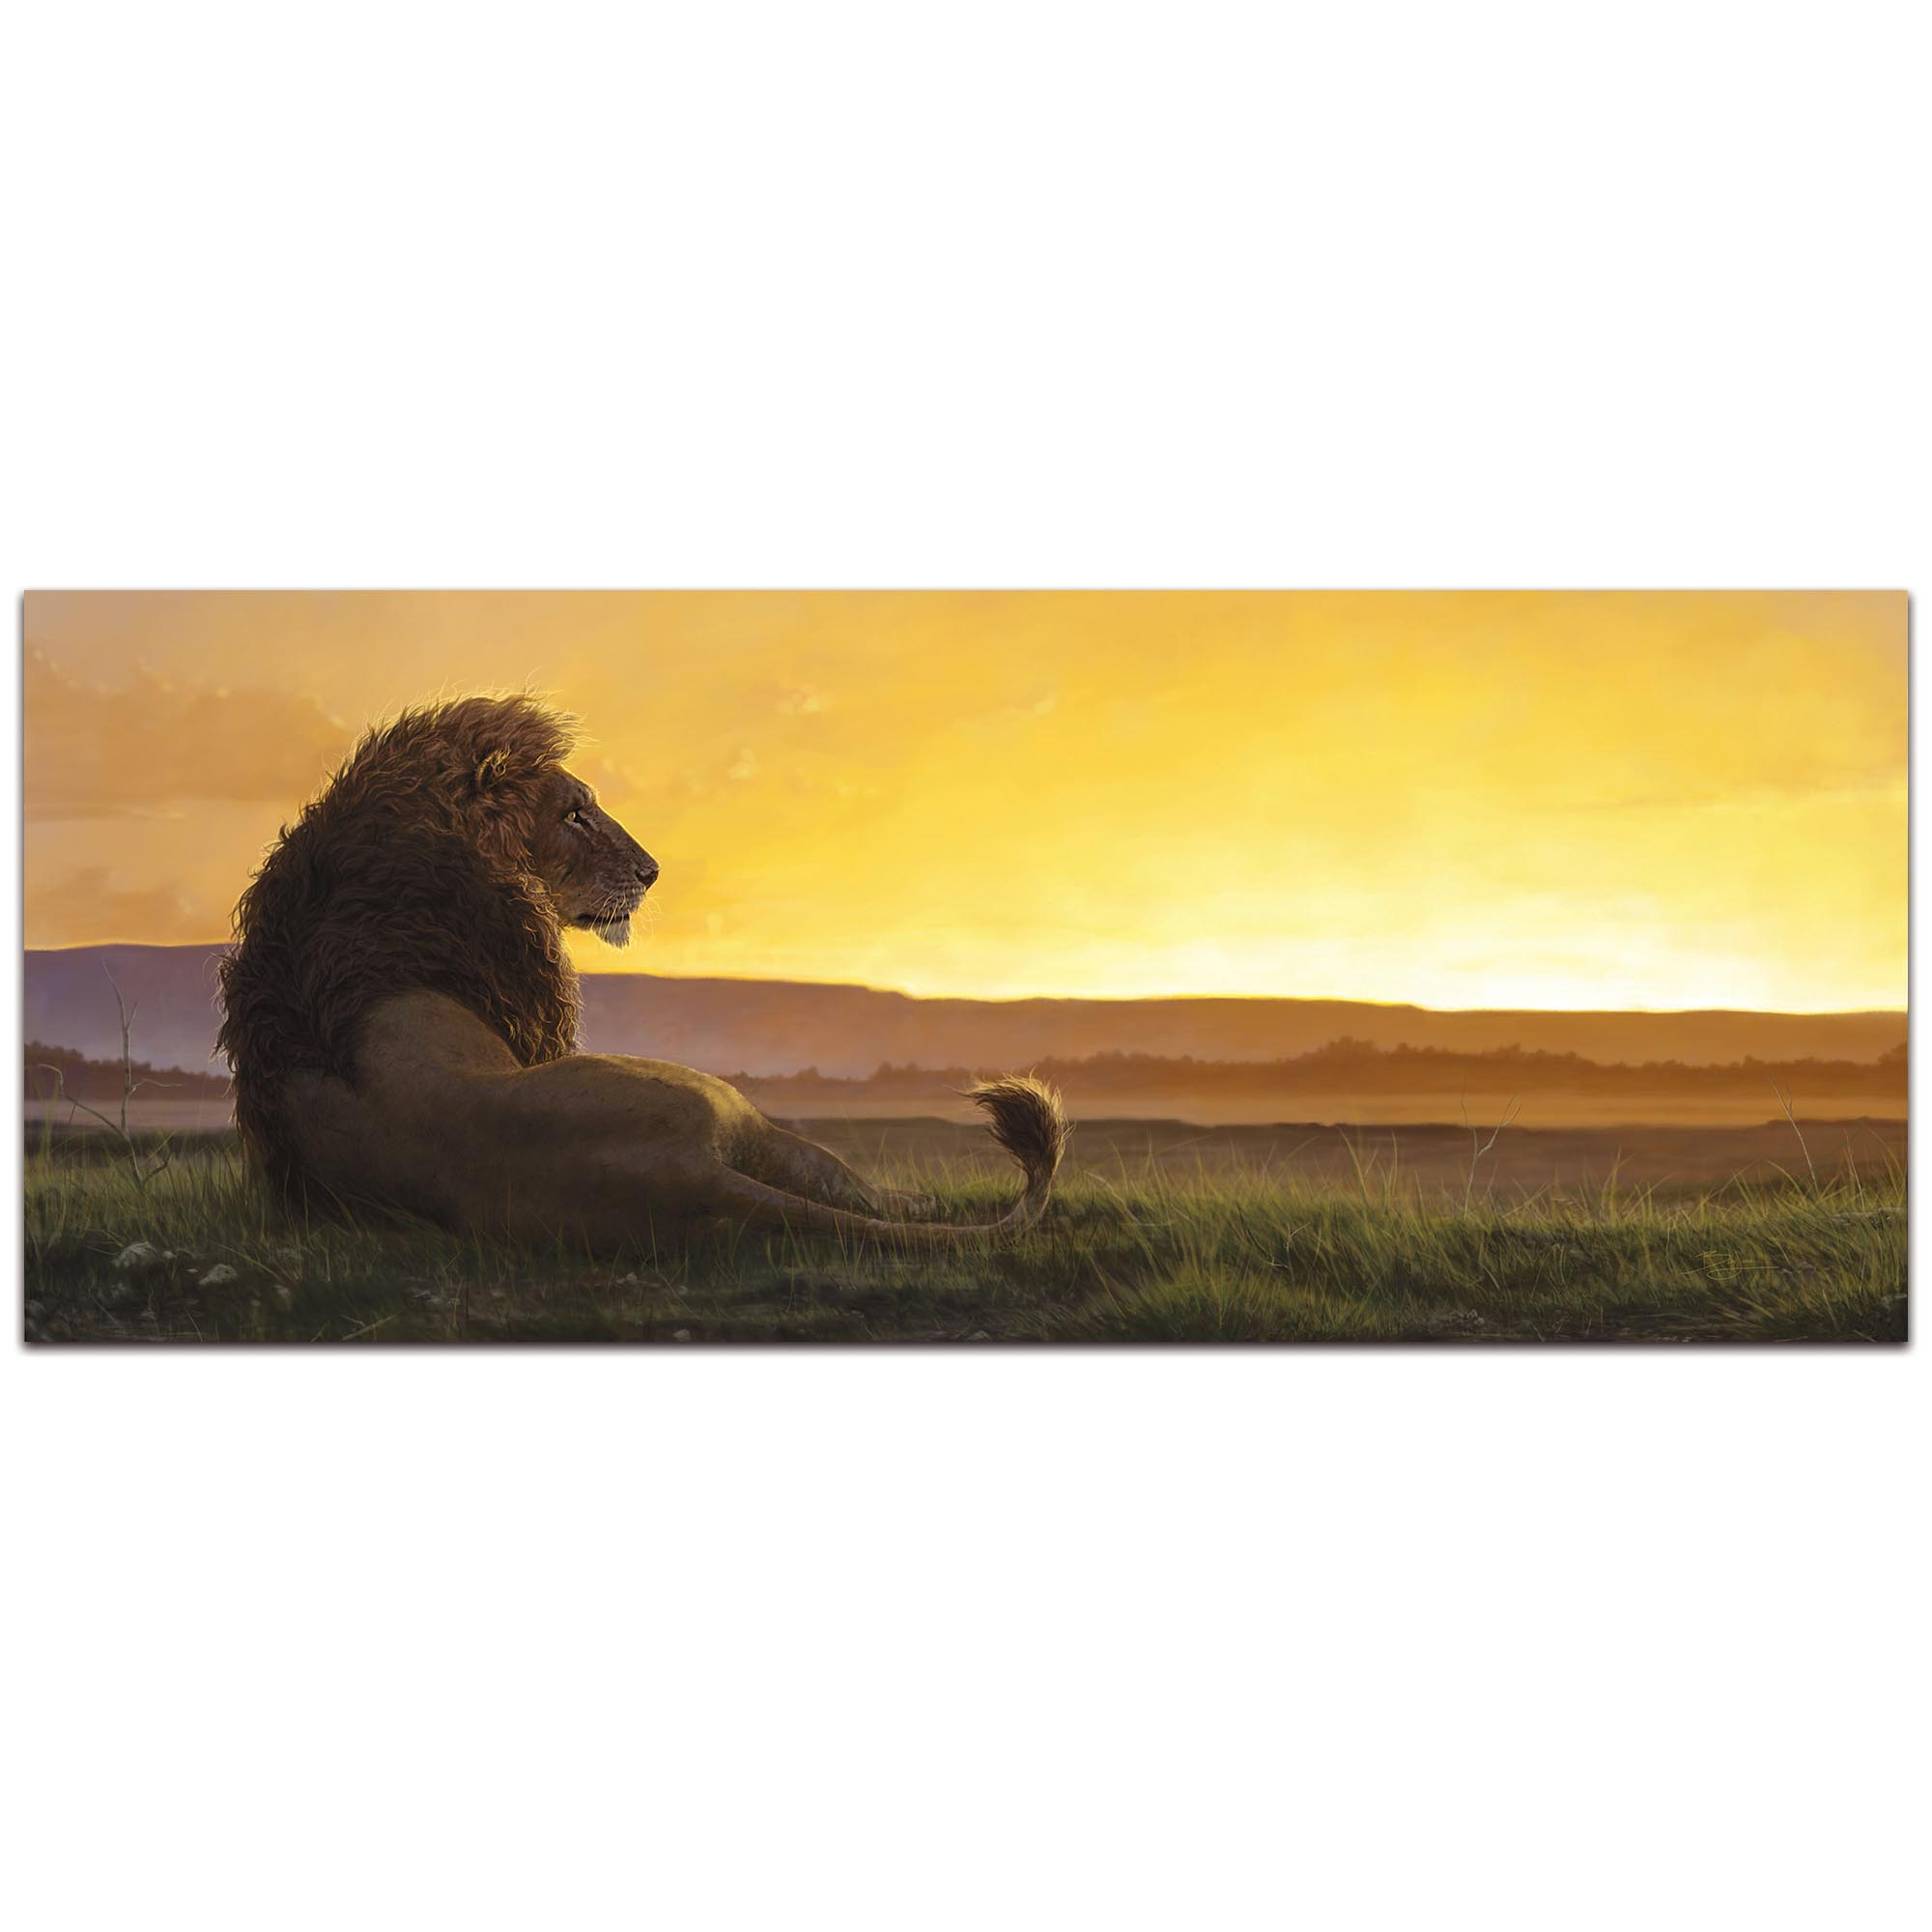 Metal Art Studio - Lion in the Sun by Ben Judd - Expressionist Wall ...